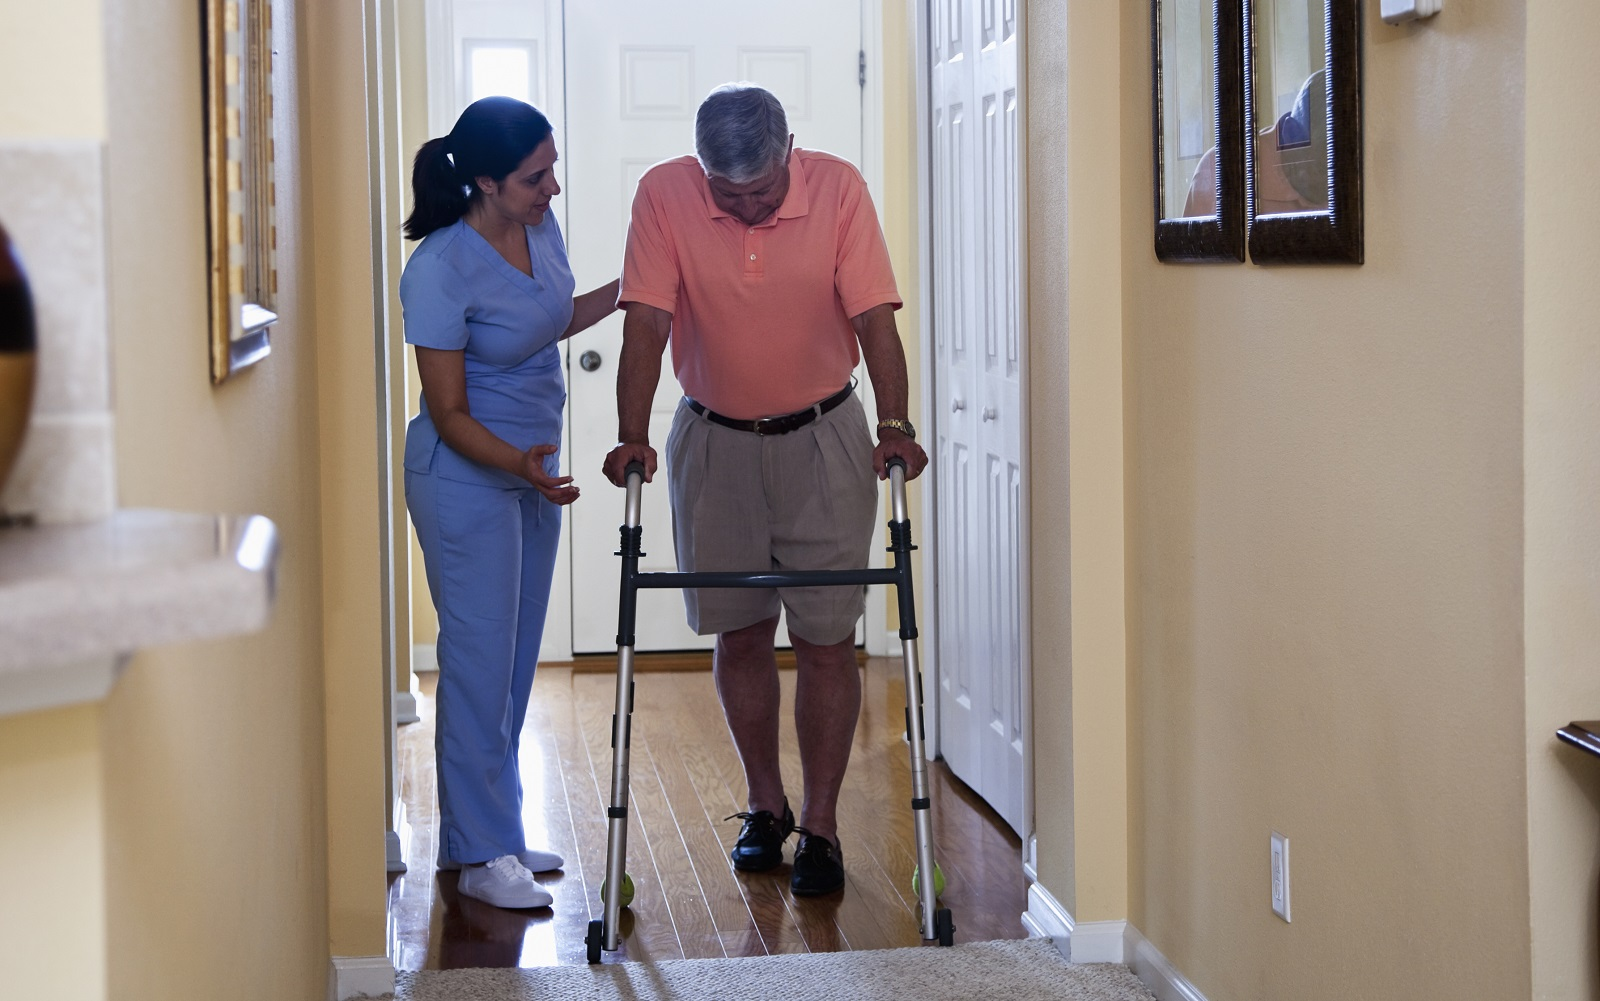 A female home health aide in a blue uniform assists a man using a walker.